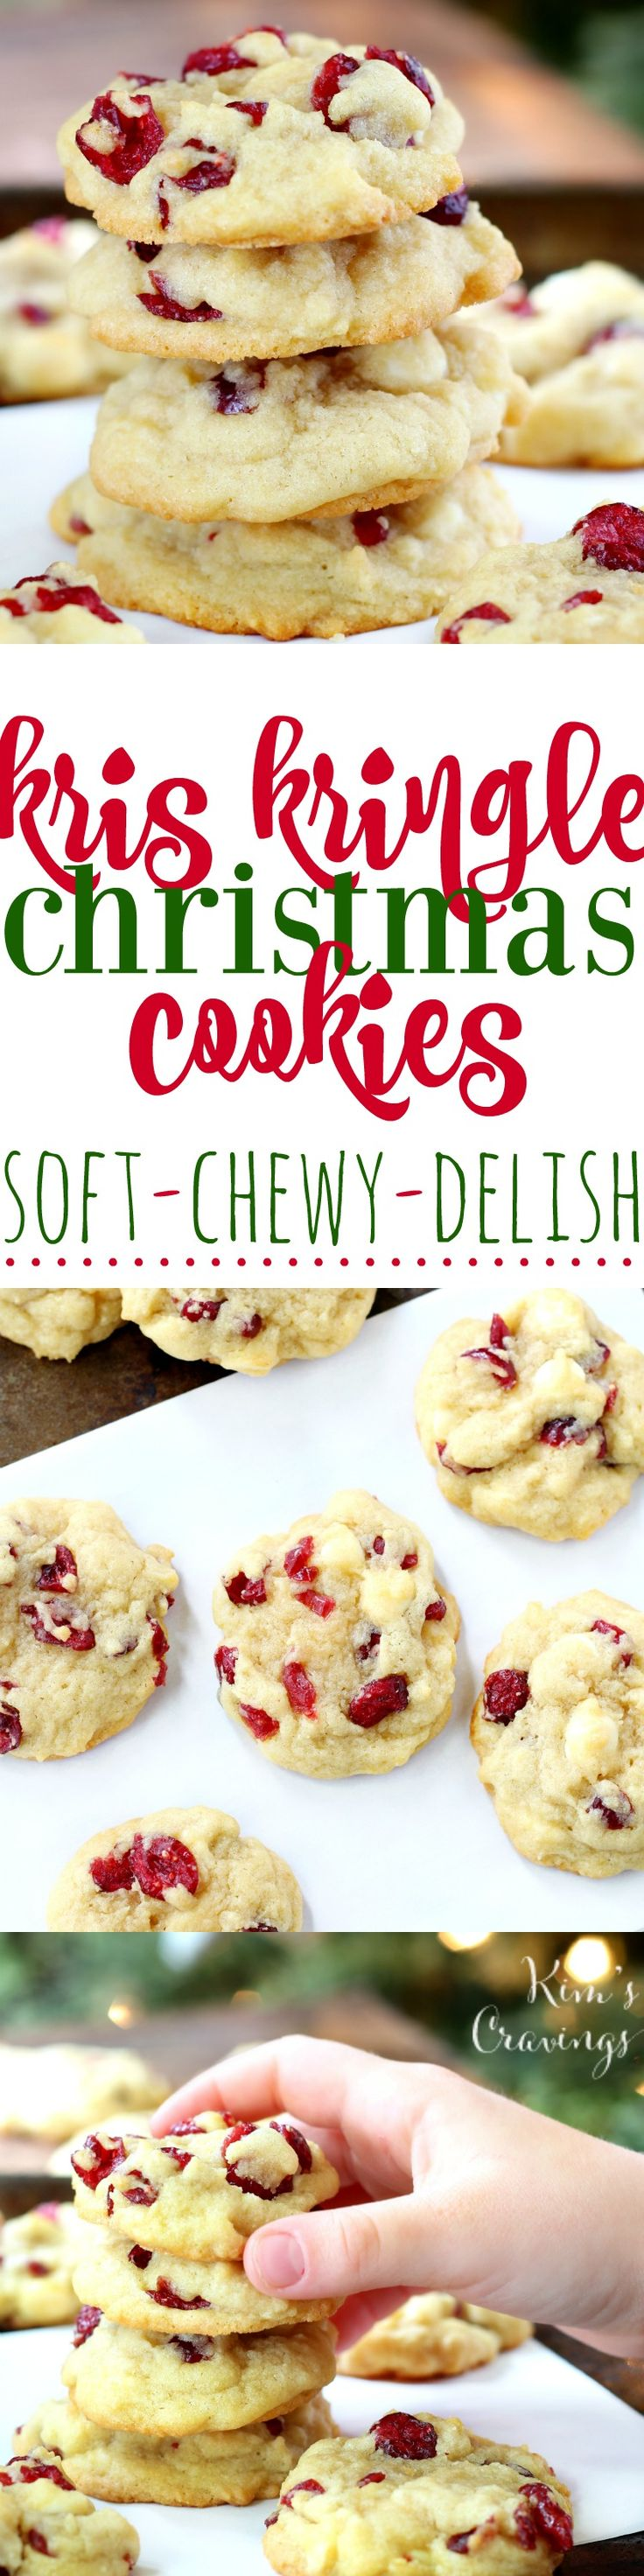 Rich and buttery Kris Kringle Christmas Cookies are dressed for the holidays with creamy white chocolate chips and sweet dried red cranberries. Seriously, the most scrumptious BEST Christmas cookies EVER! #BakeMagicMoments #Walmart #AD